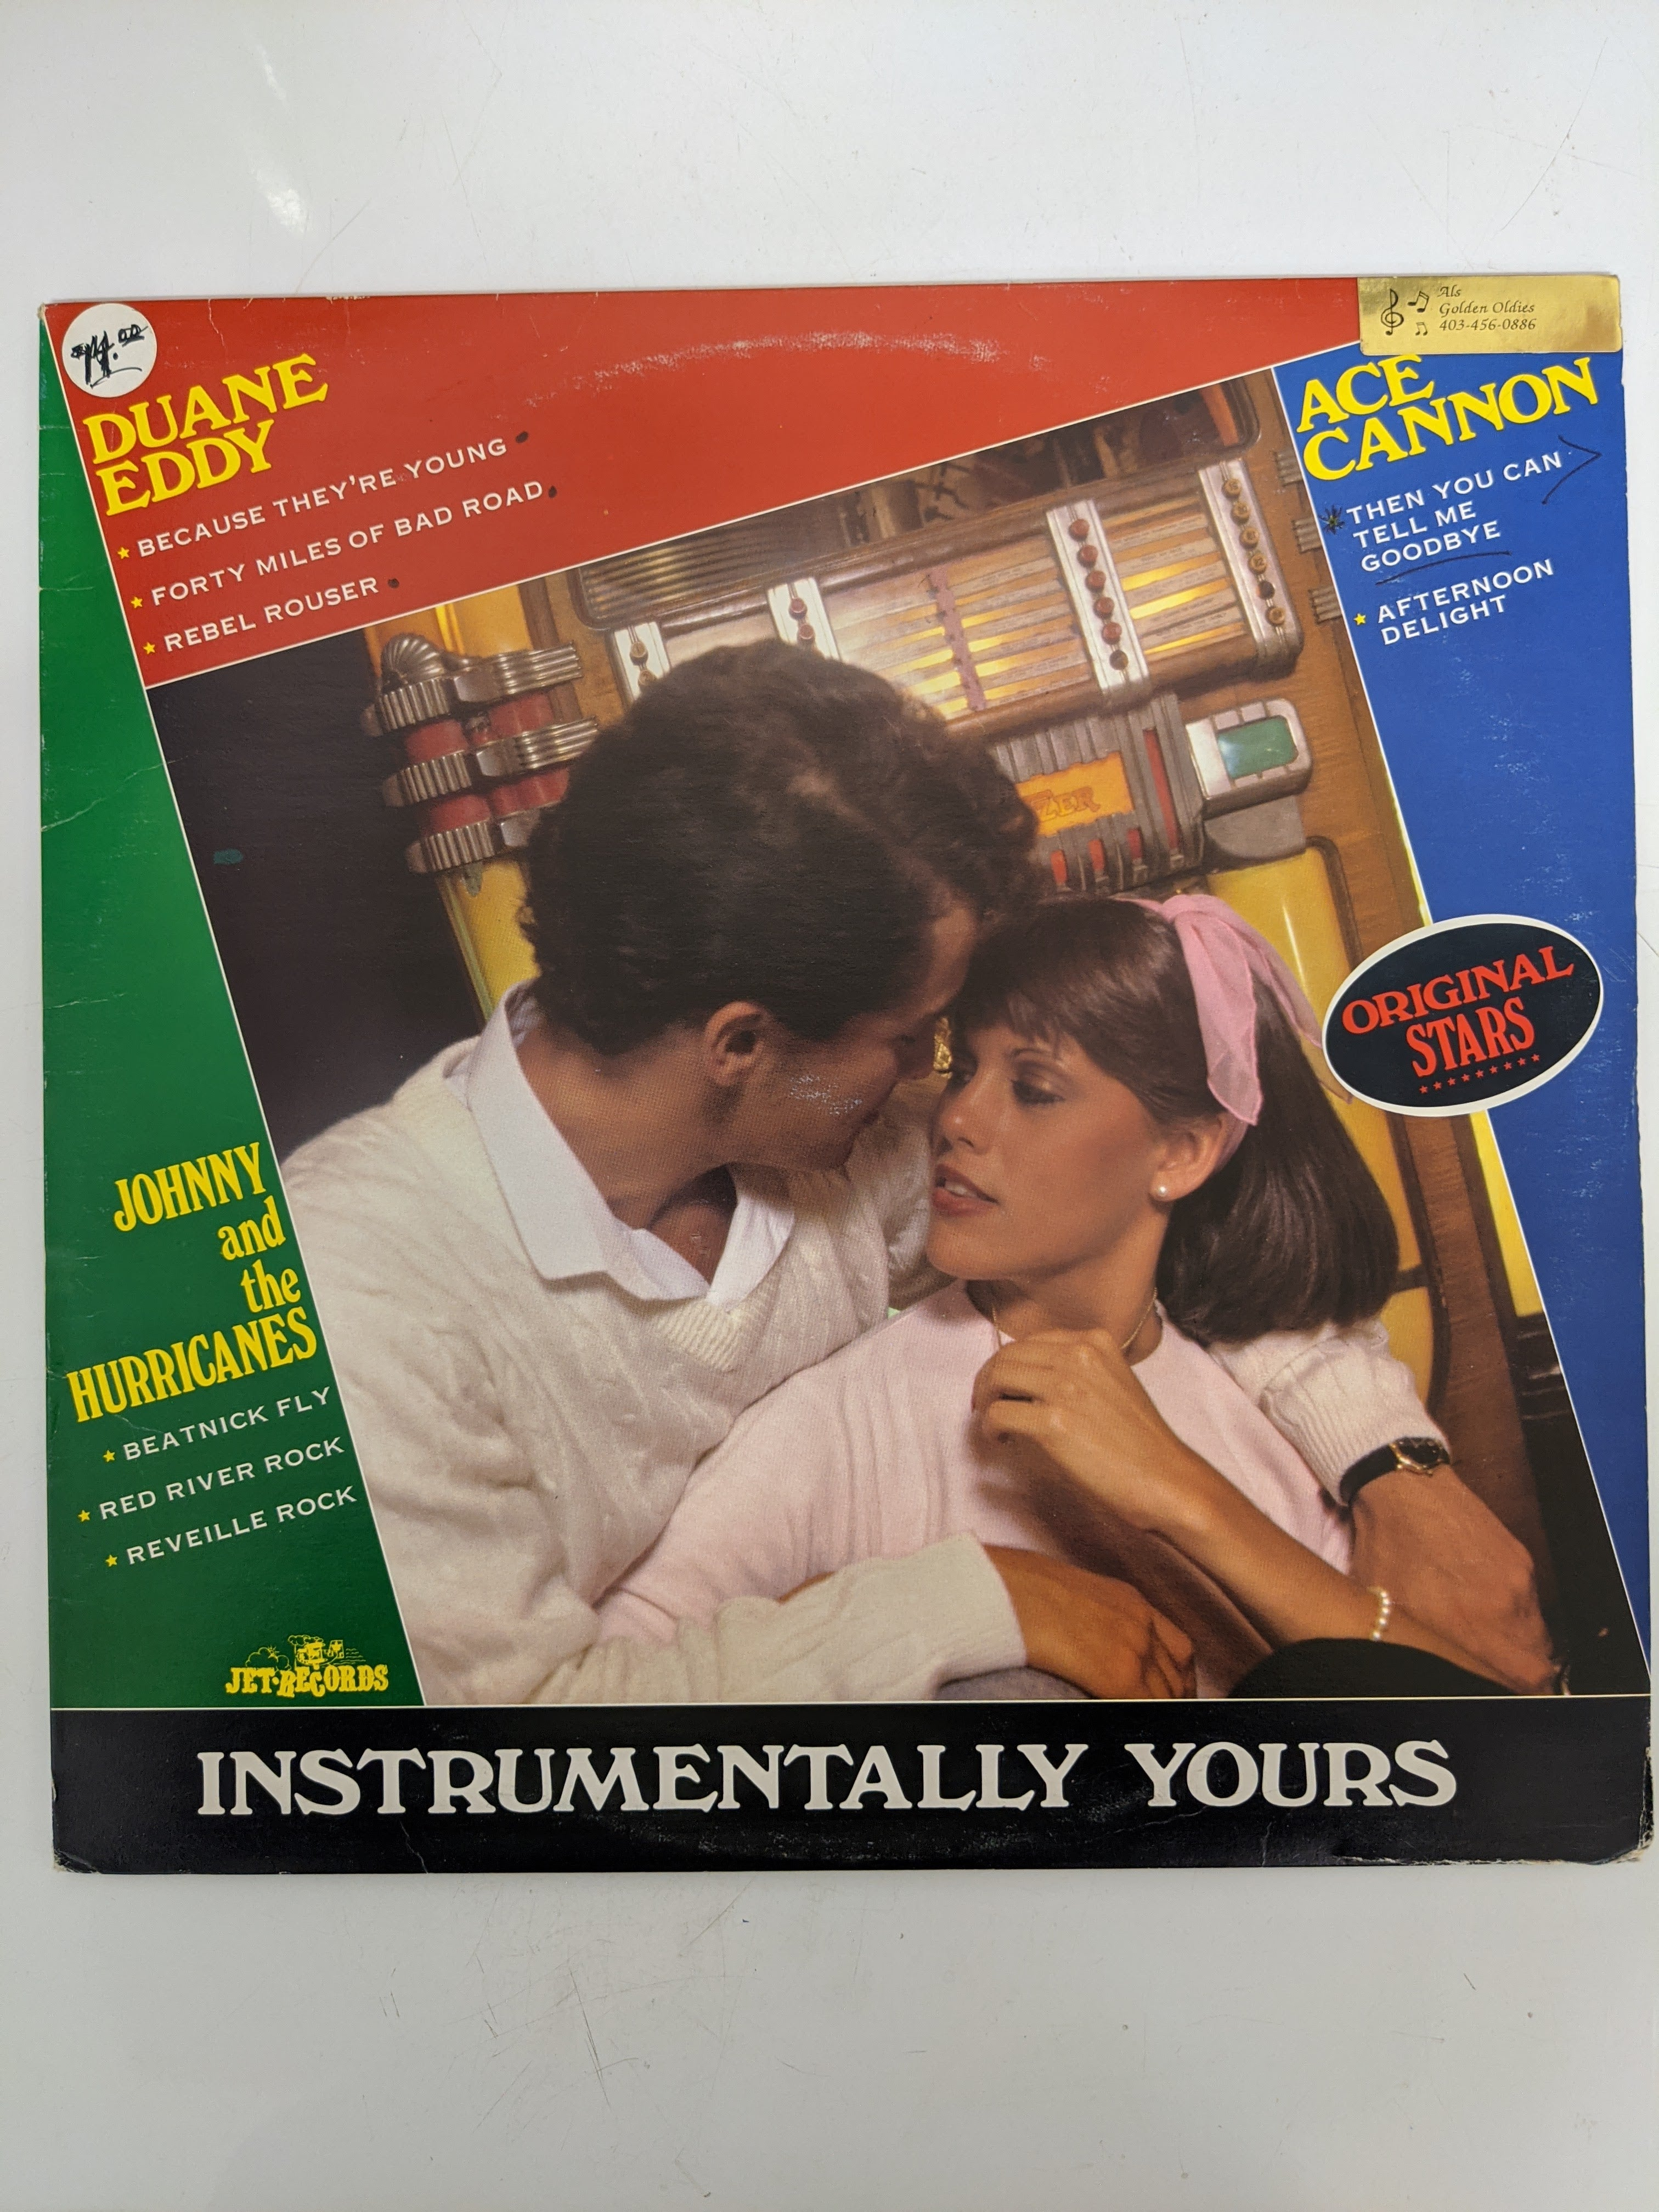 Duane Eddy, Ace Cannon, Jihnny And The Hurricanes- Instrumentally Yours Vinyl